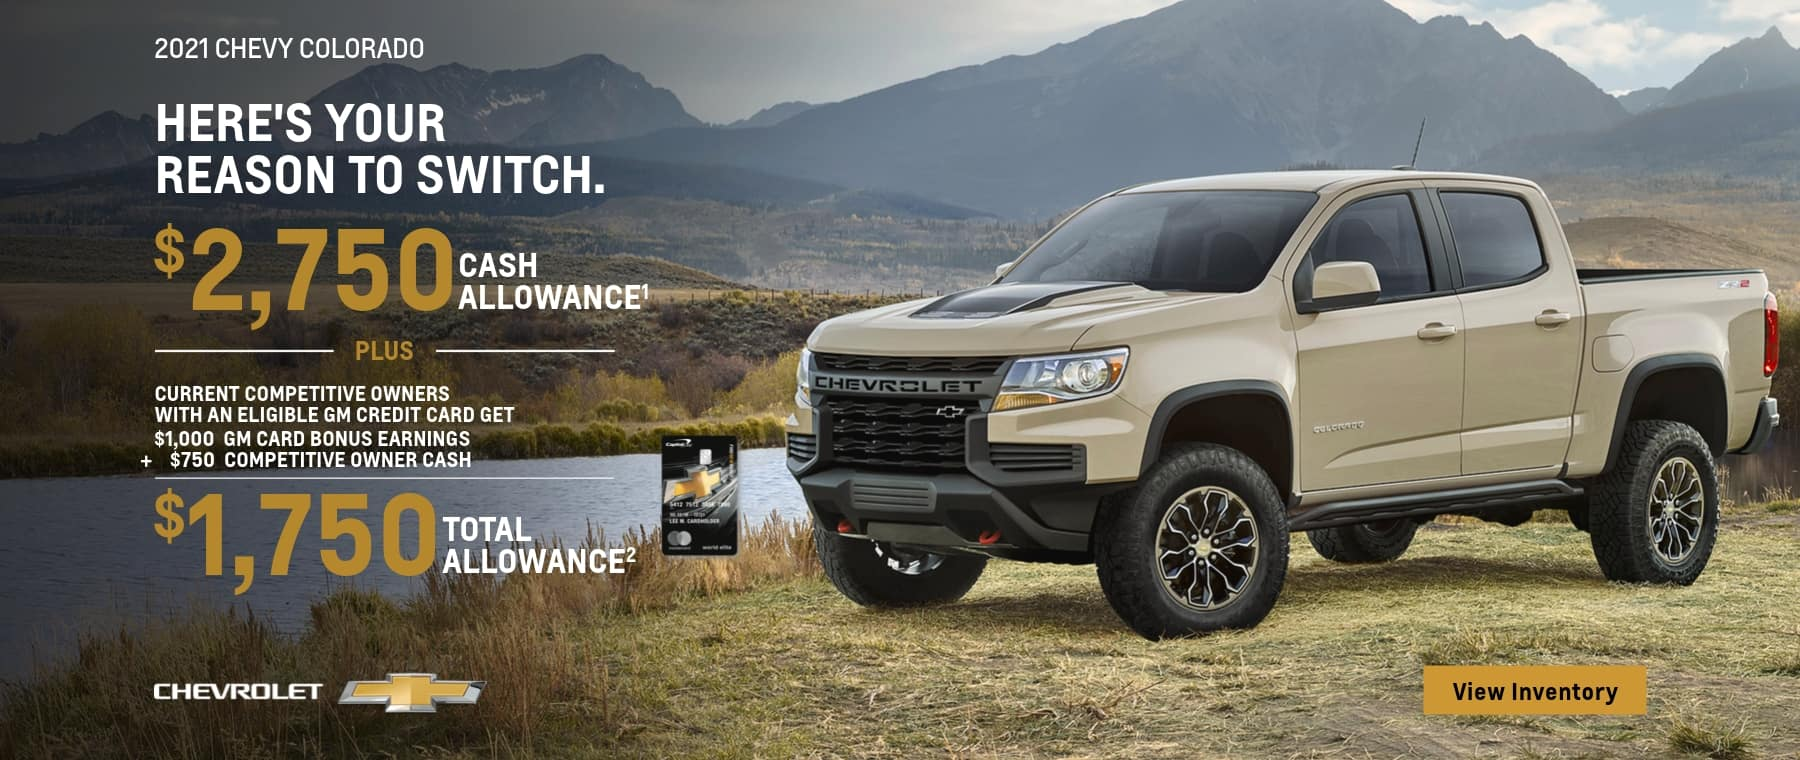 2021 CHEVY COLORADO HERE'S YOUR REASON TO SWITCH. $2,750 CASH ALLOWANCE PLUS CURRENT COMPETITIVE OWNERS WITH AN ELIGIBLE GM CREDIT CARD GET $1,000 GM CARD BONUS EARNINGS $750 COMPETITIVE OWNER CASH $1,750 TOTAL ALLOWANCE